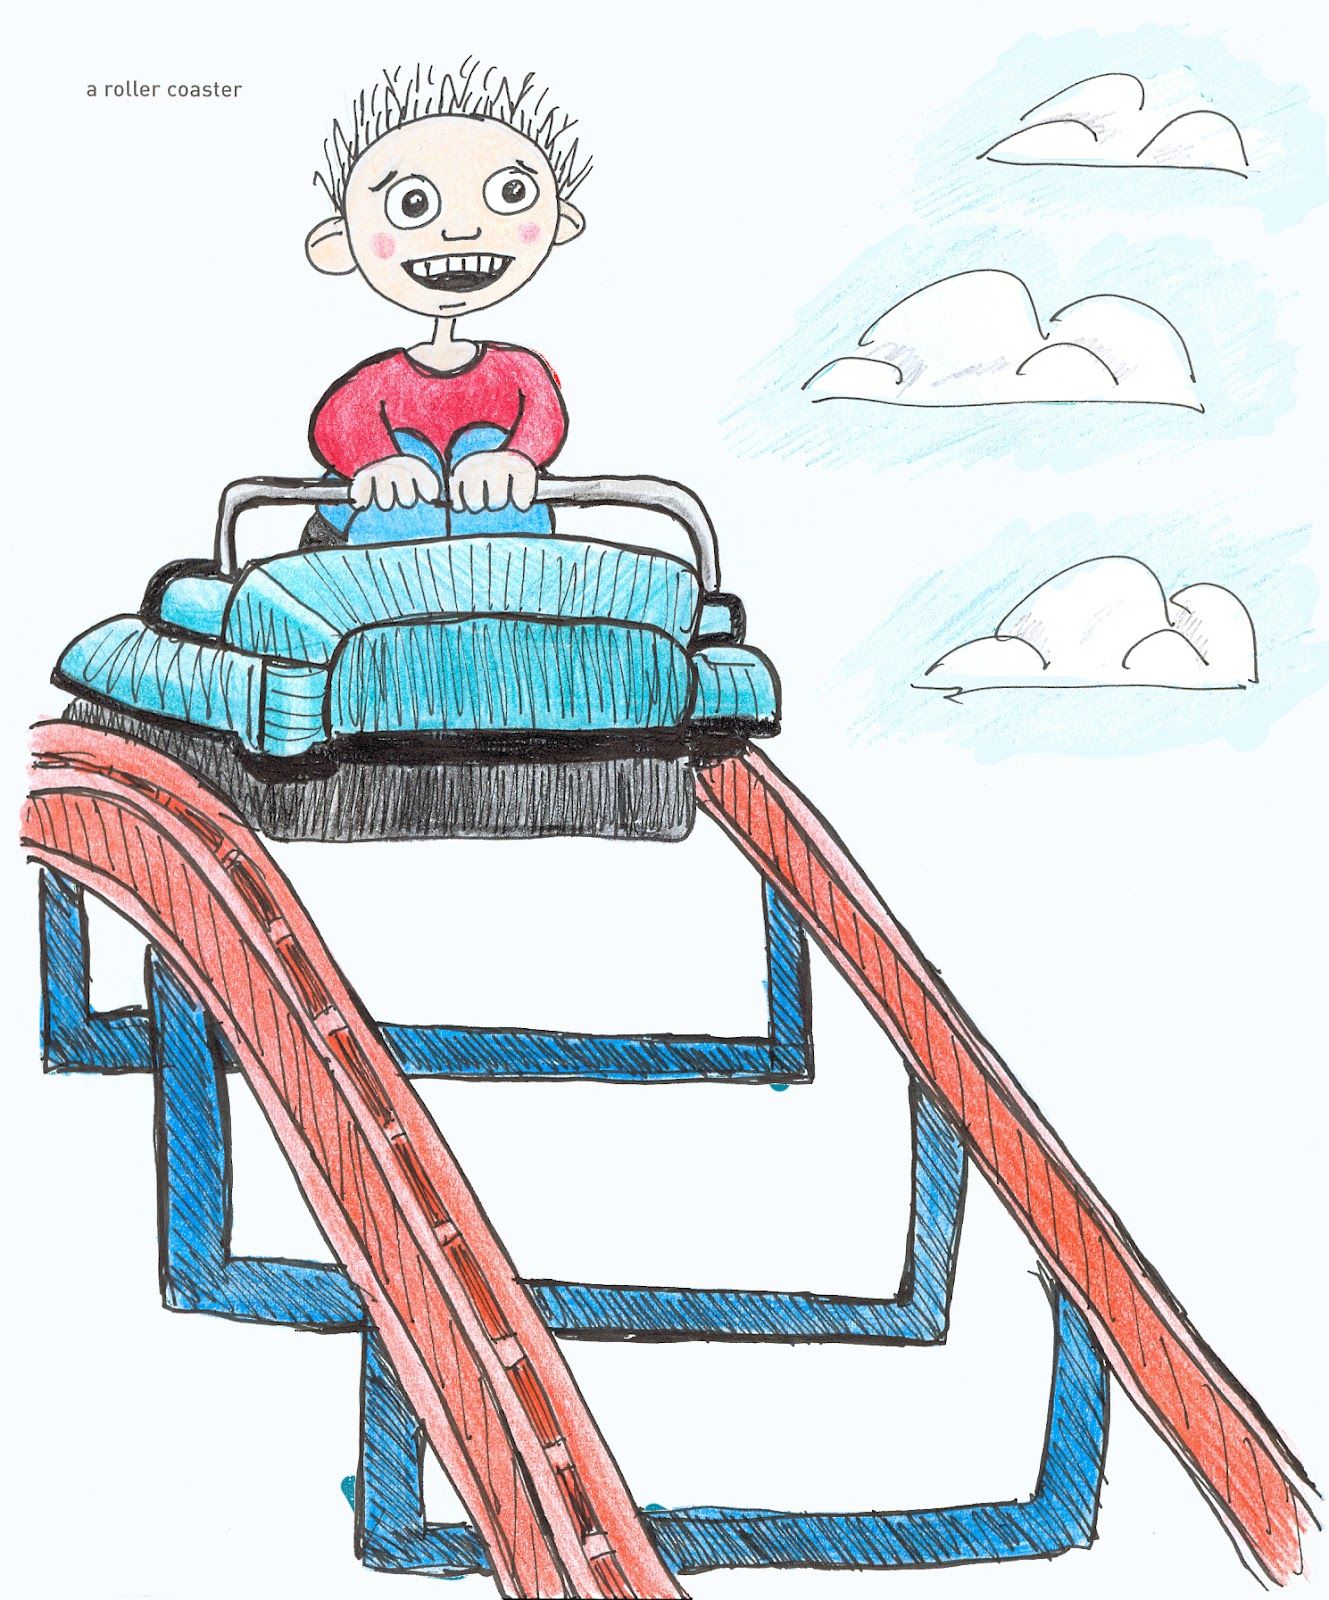 Drawing A Roller Coaster | Free download on ClipArtMag